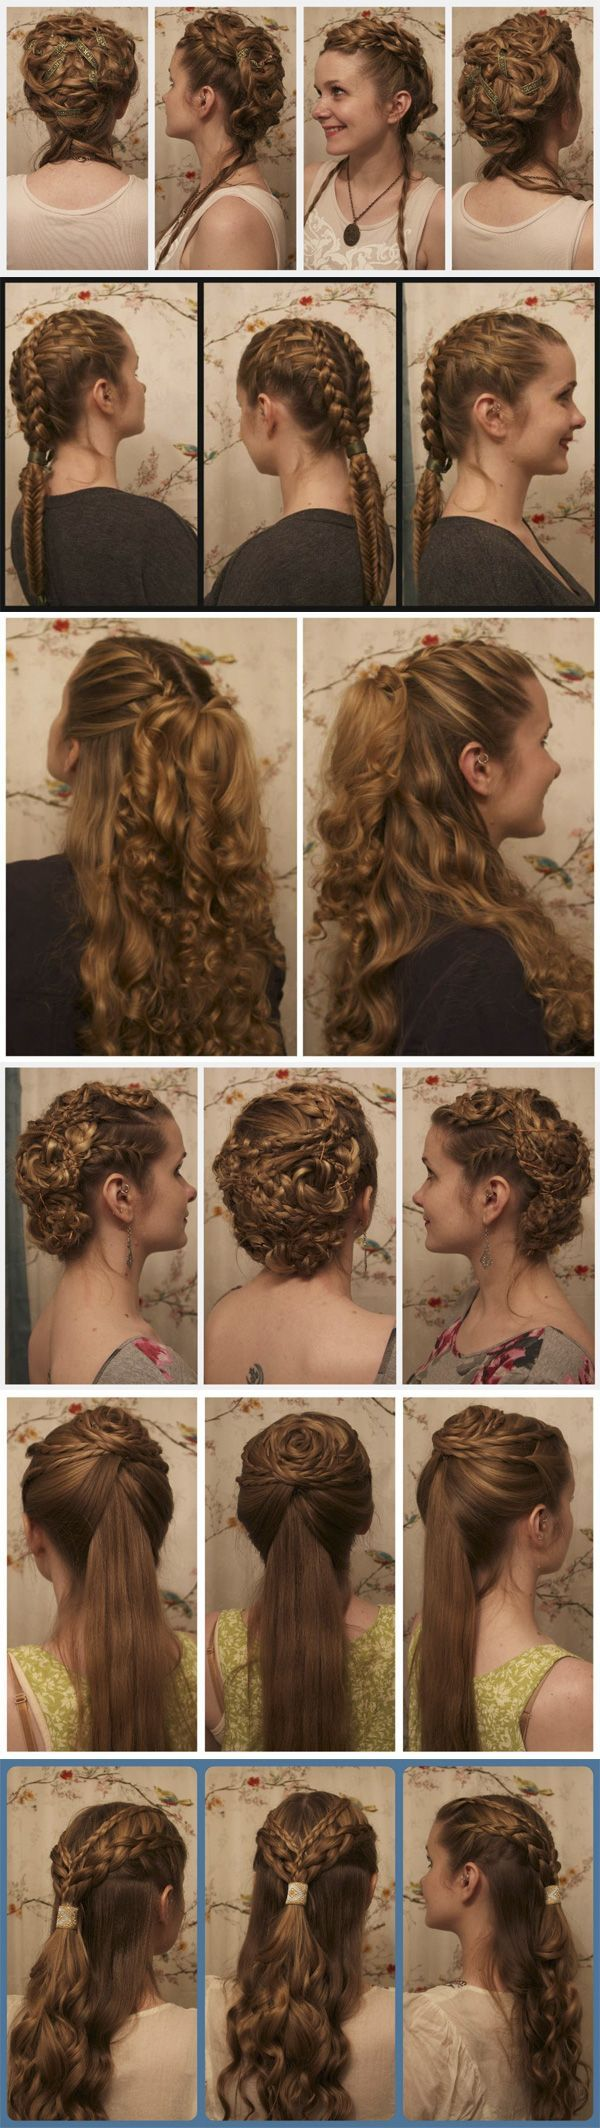 Do you have hair fit for a Khaleesi? Take this quiz and find out!